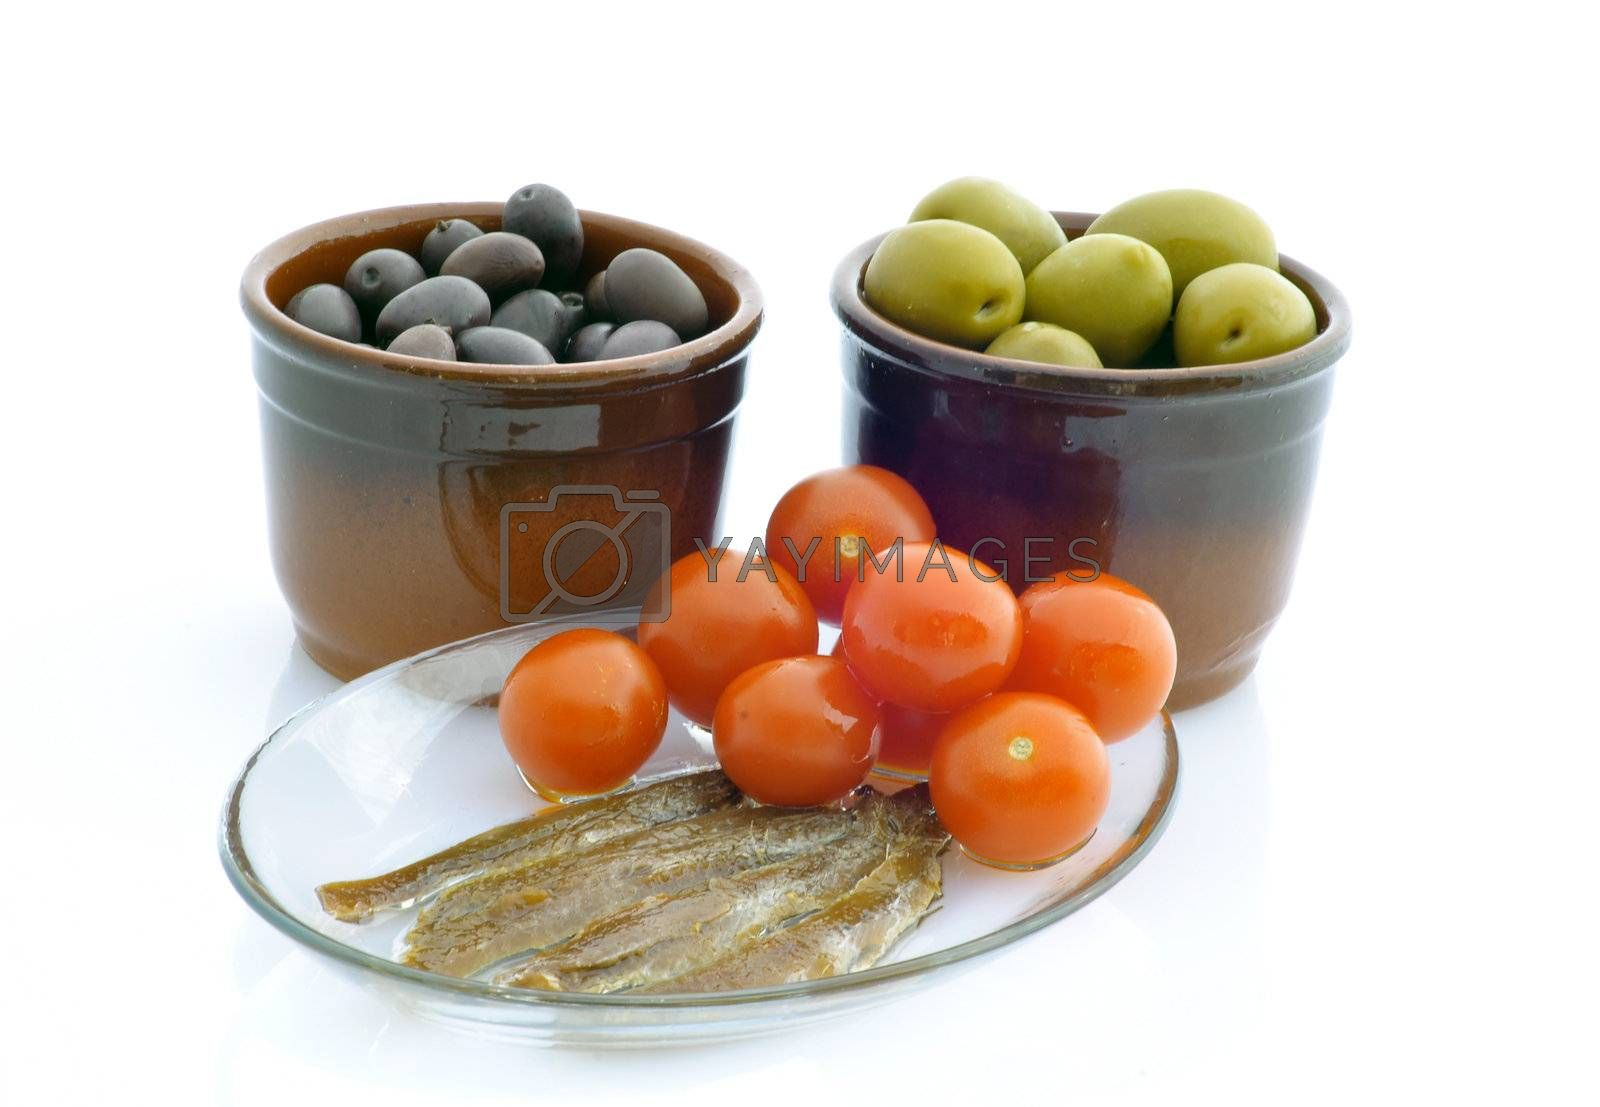 Green and black olives, tomatoes and anchovies on white backgrounds